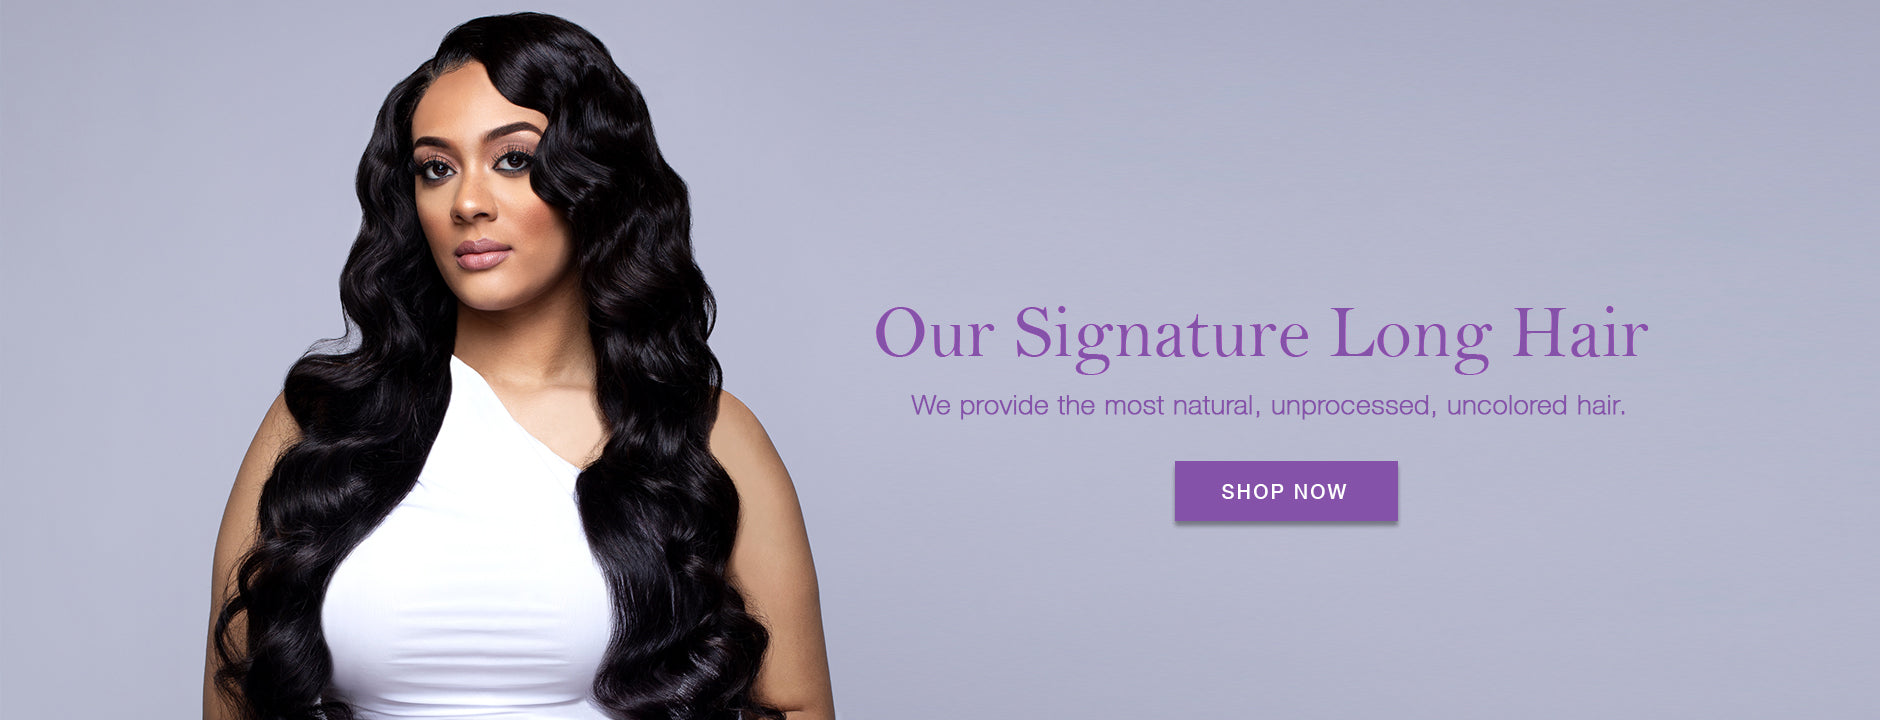 Our Signature Long Hair - We Provide the most natural, unprocessed, uncolored hair.